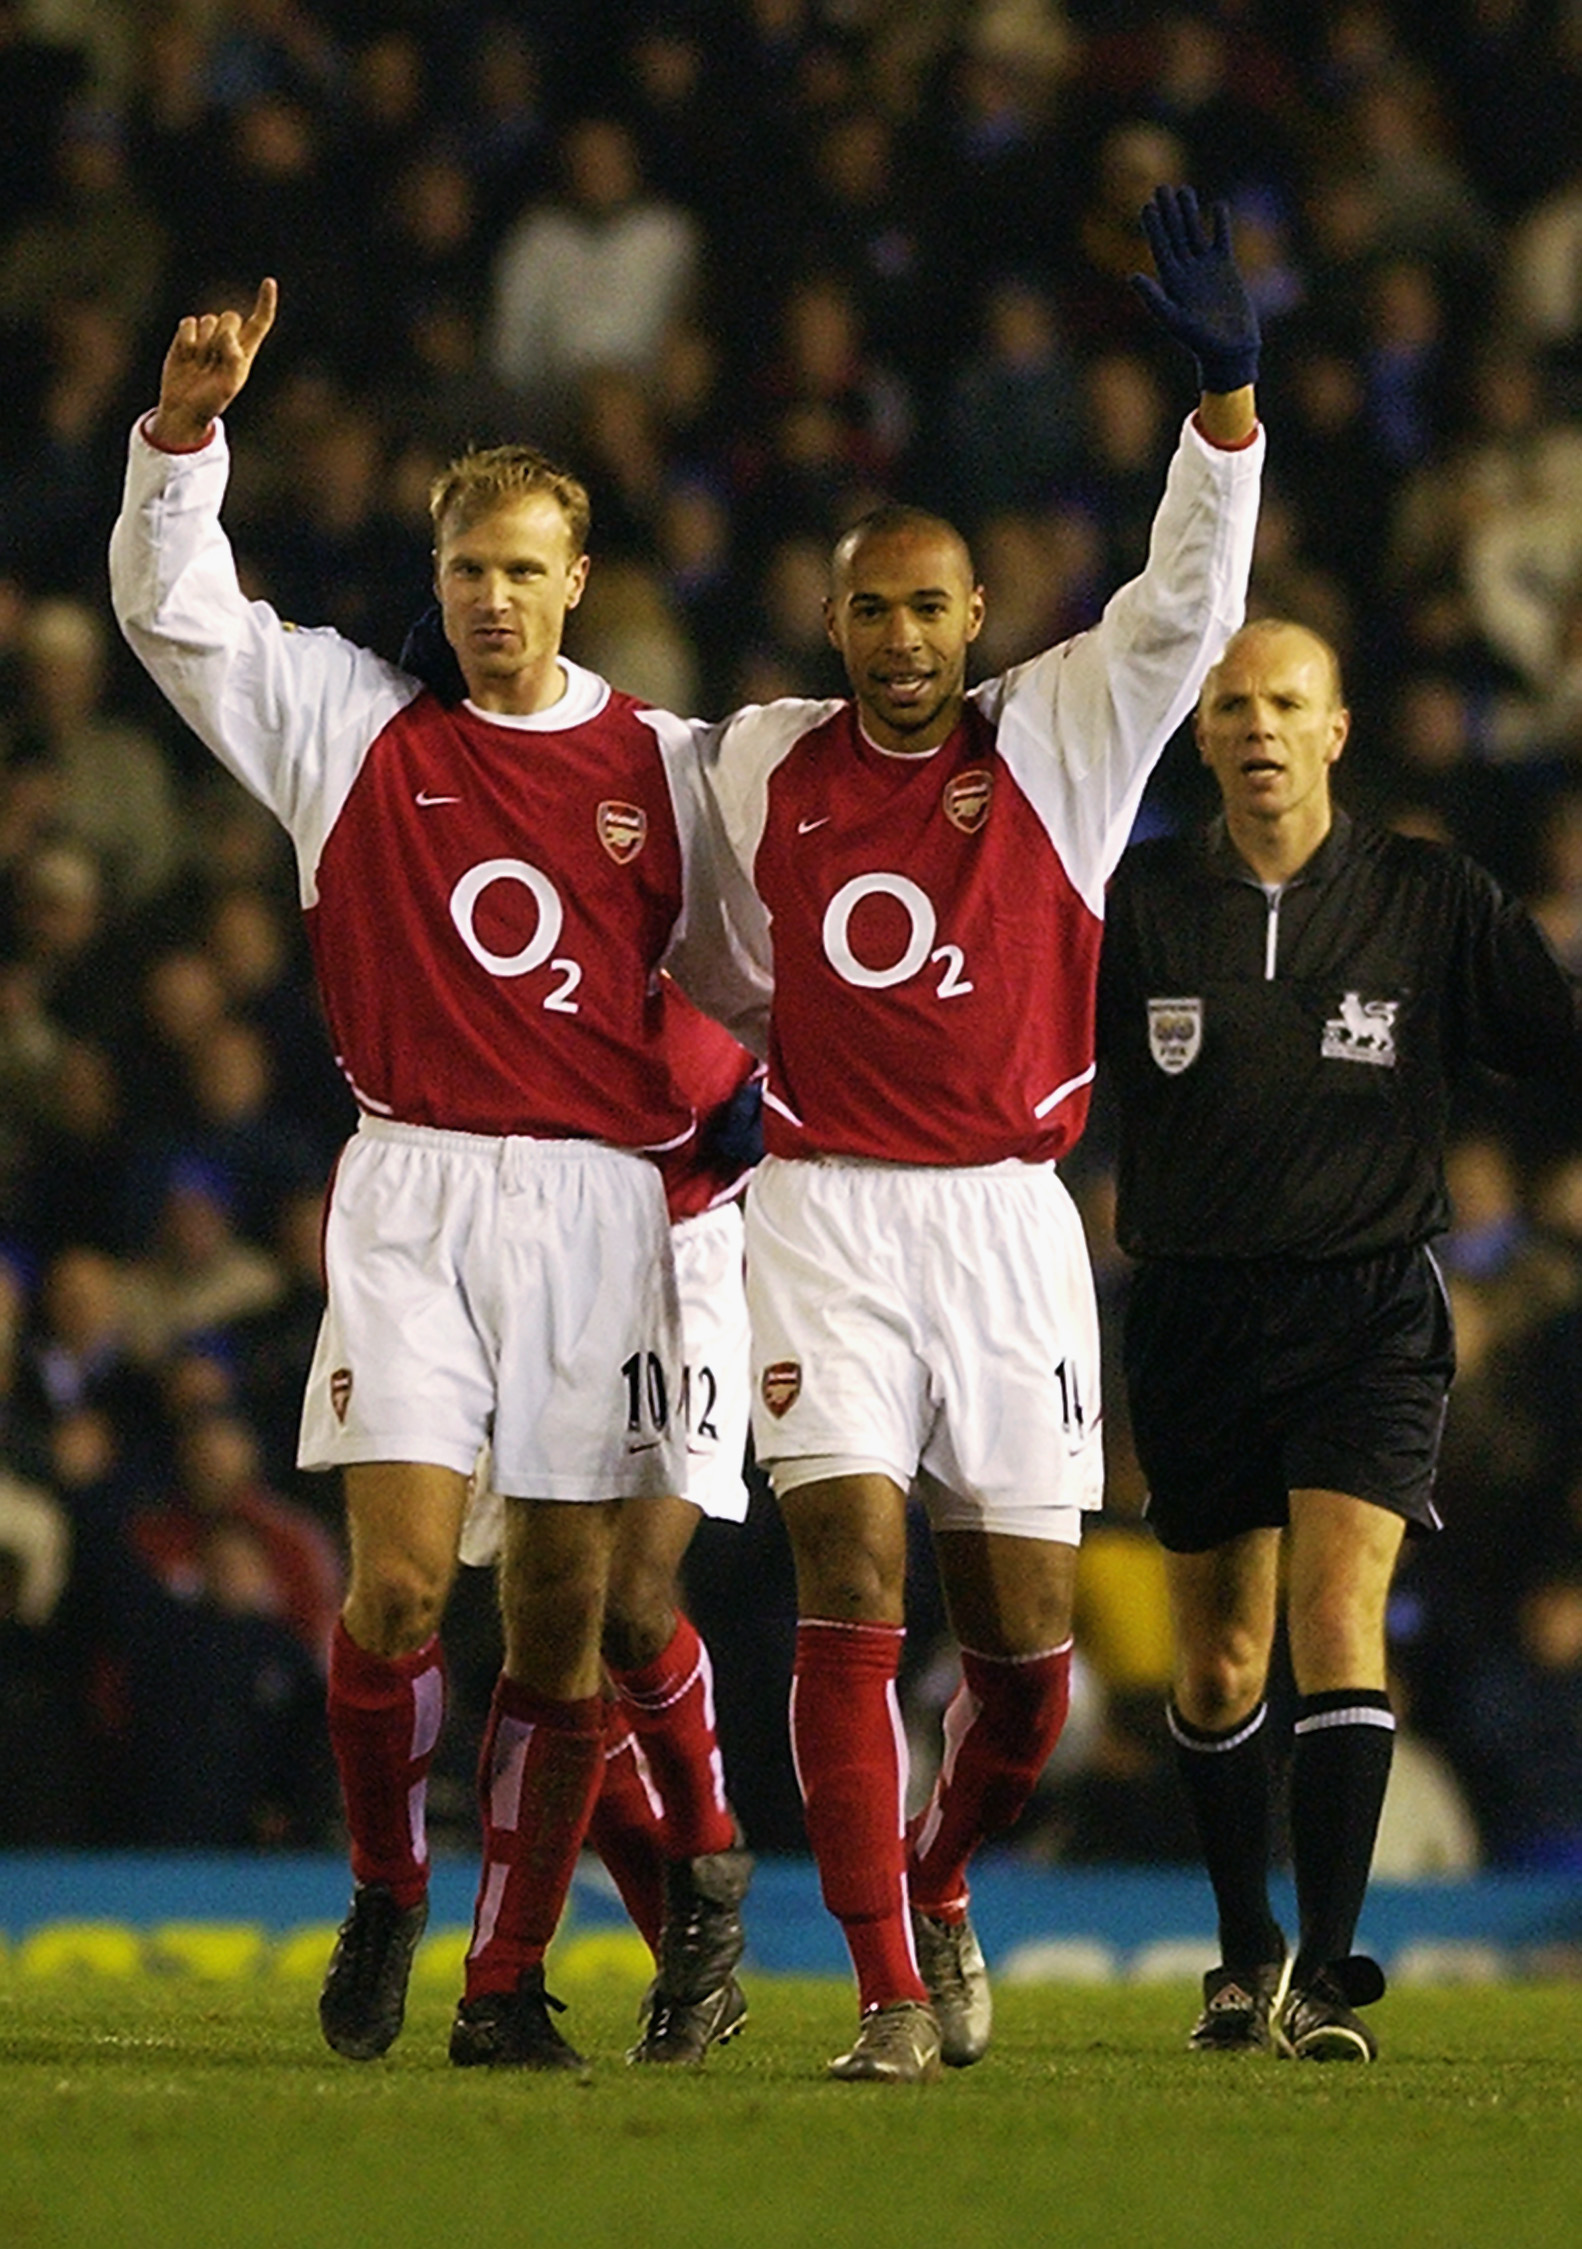 8ca0bf937be BIRMINGHAM - JANUARY 12  Thierry Henry of Arsenal celebrates scoring his  100th goal for Arsenal